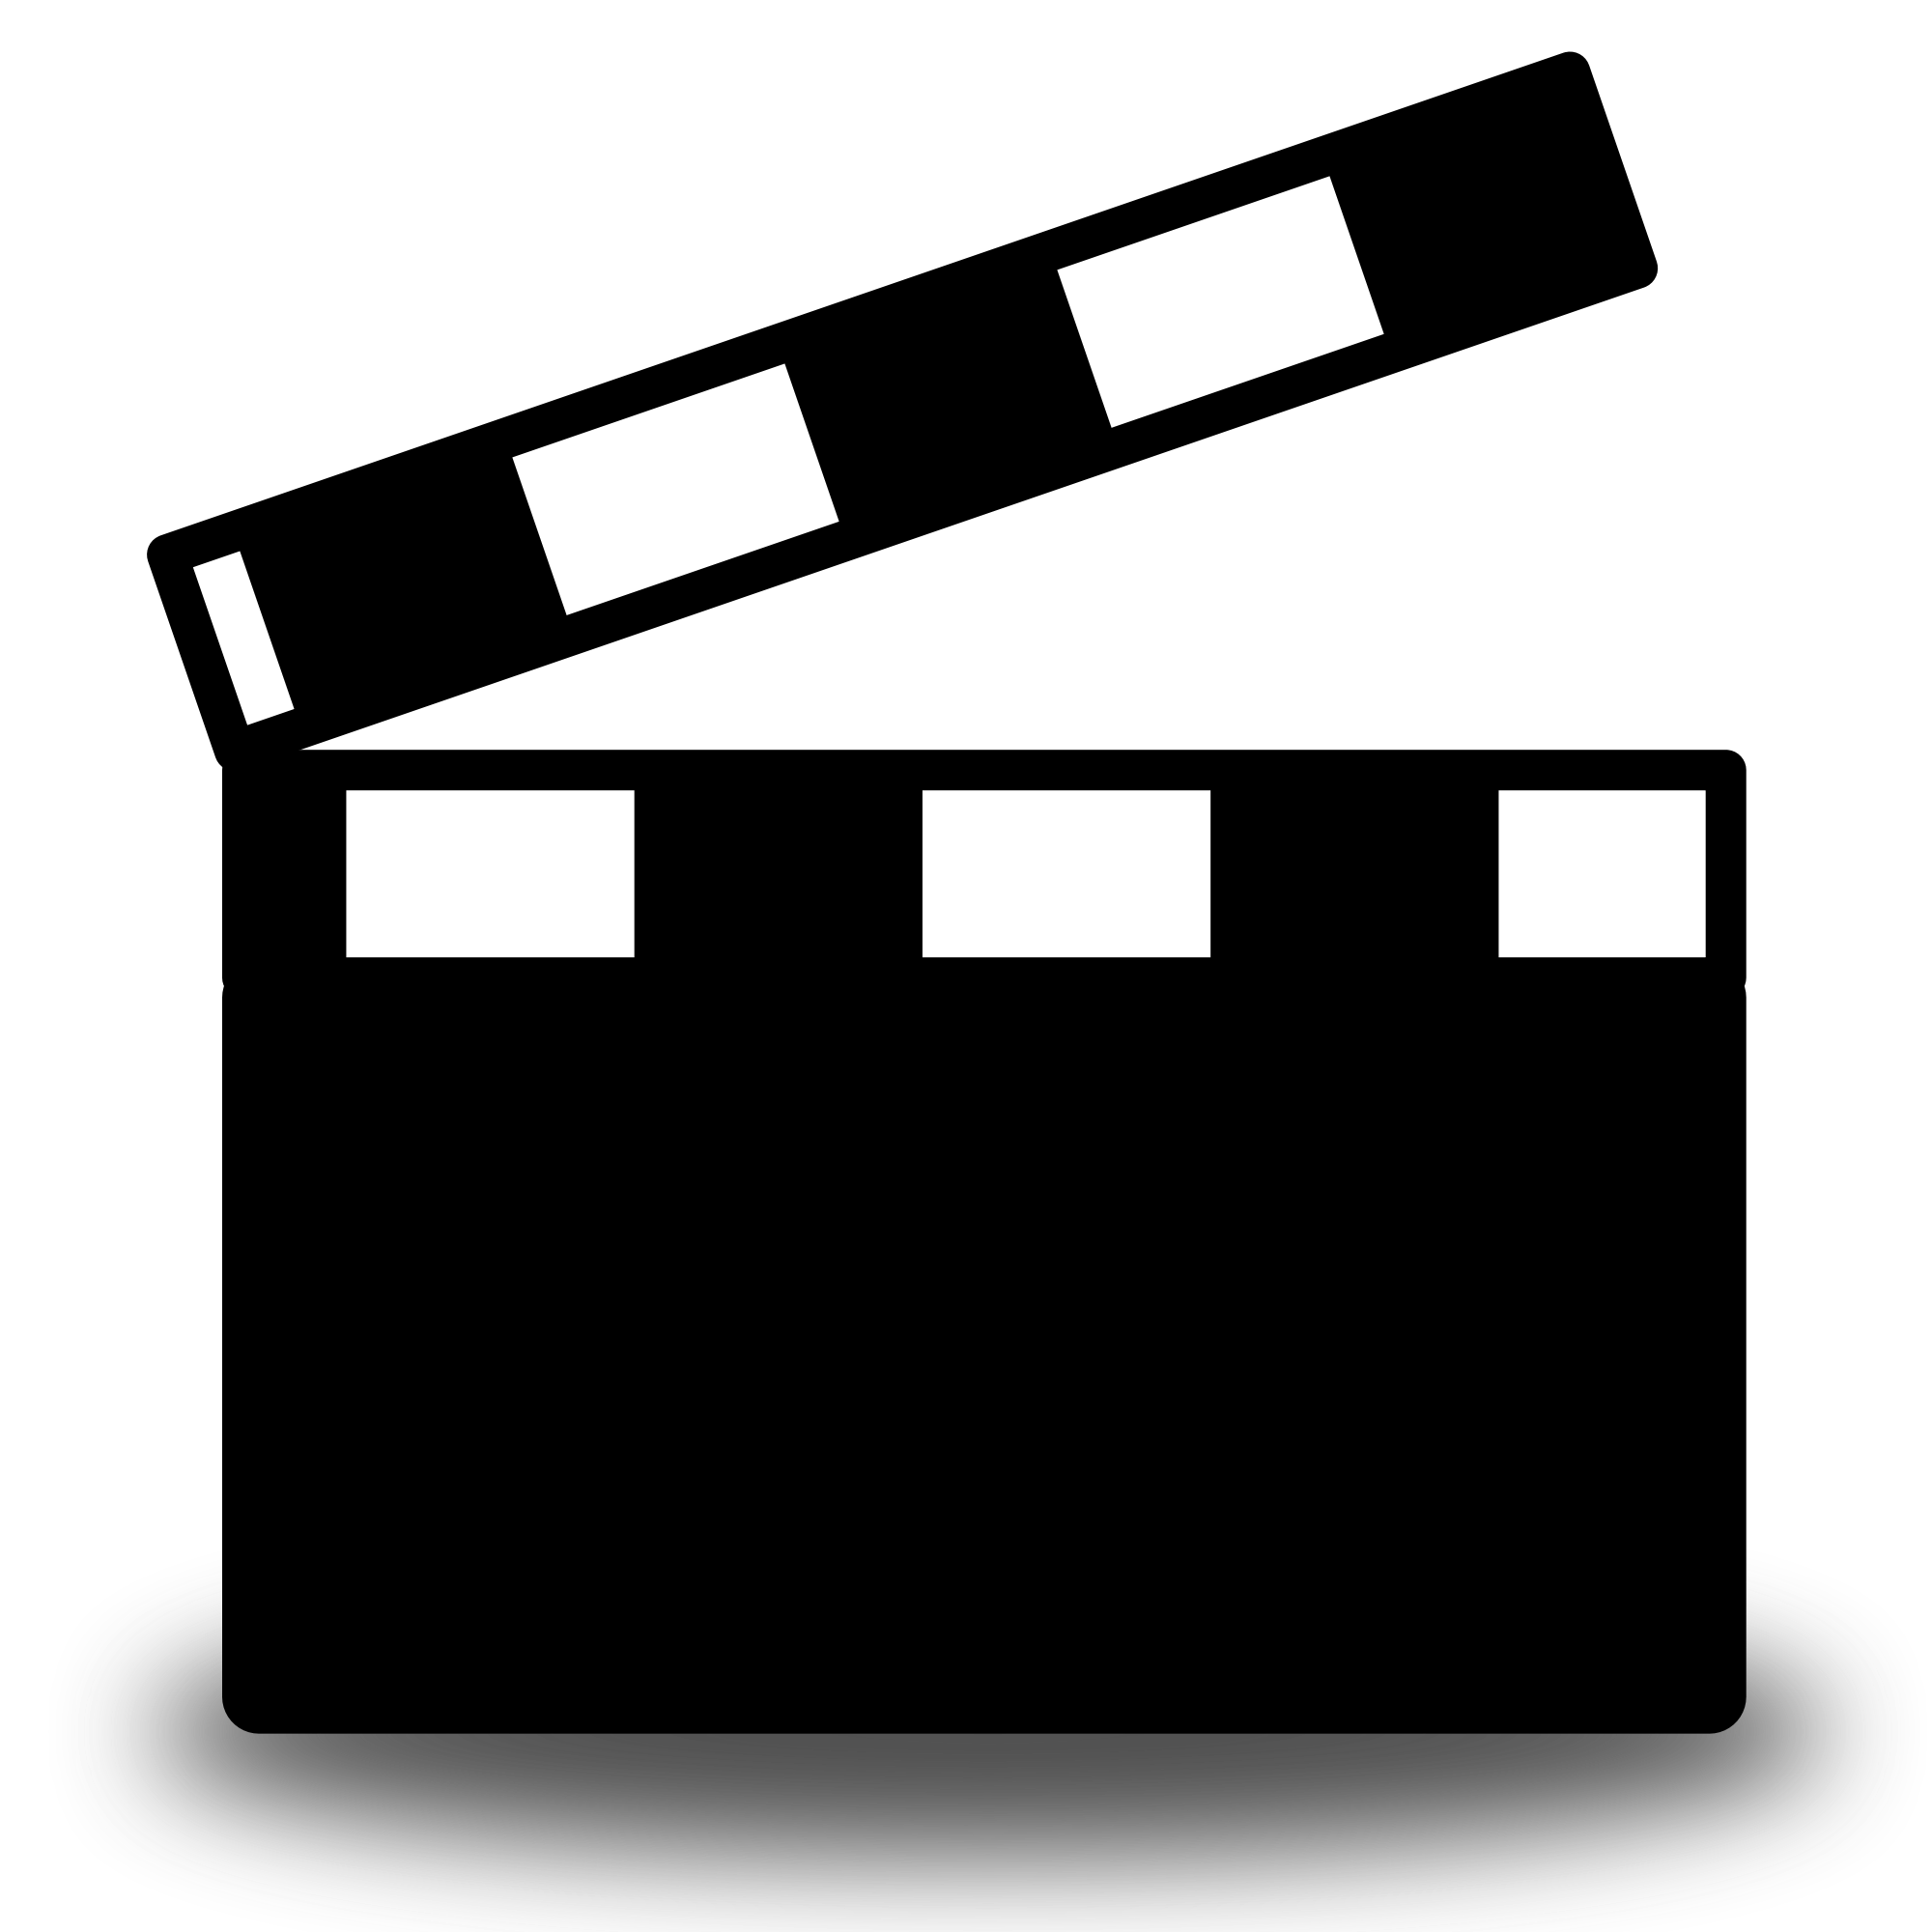 Clapperboard PNG - 4455